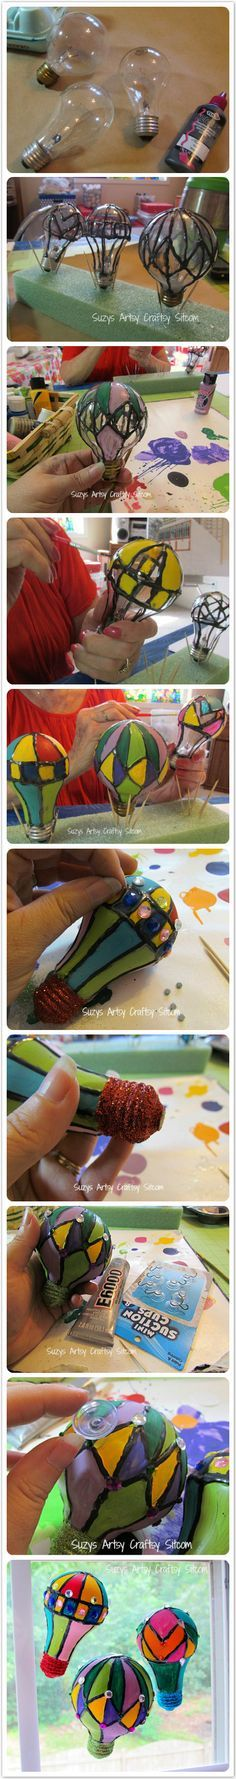 Make Hot Air Balloon Suncatchers from old lightbulbs